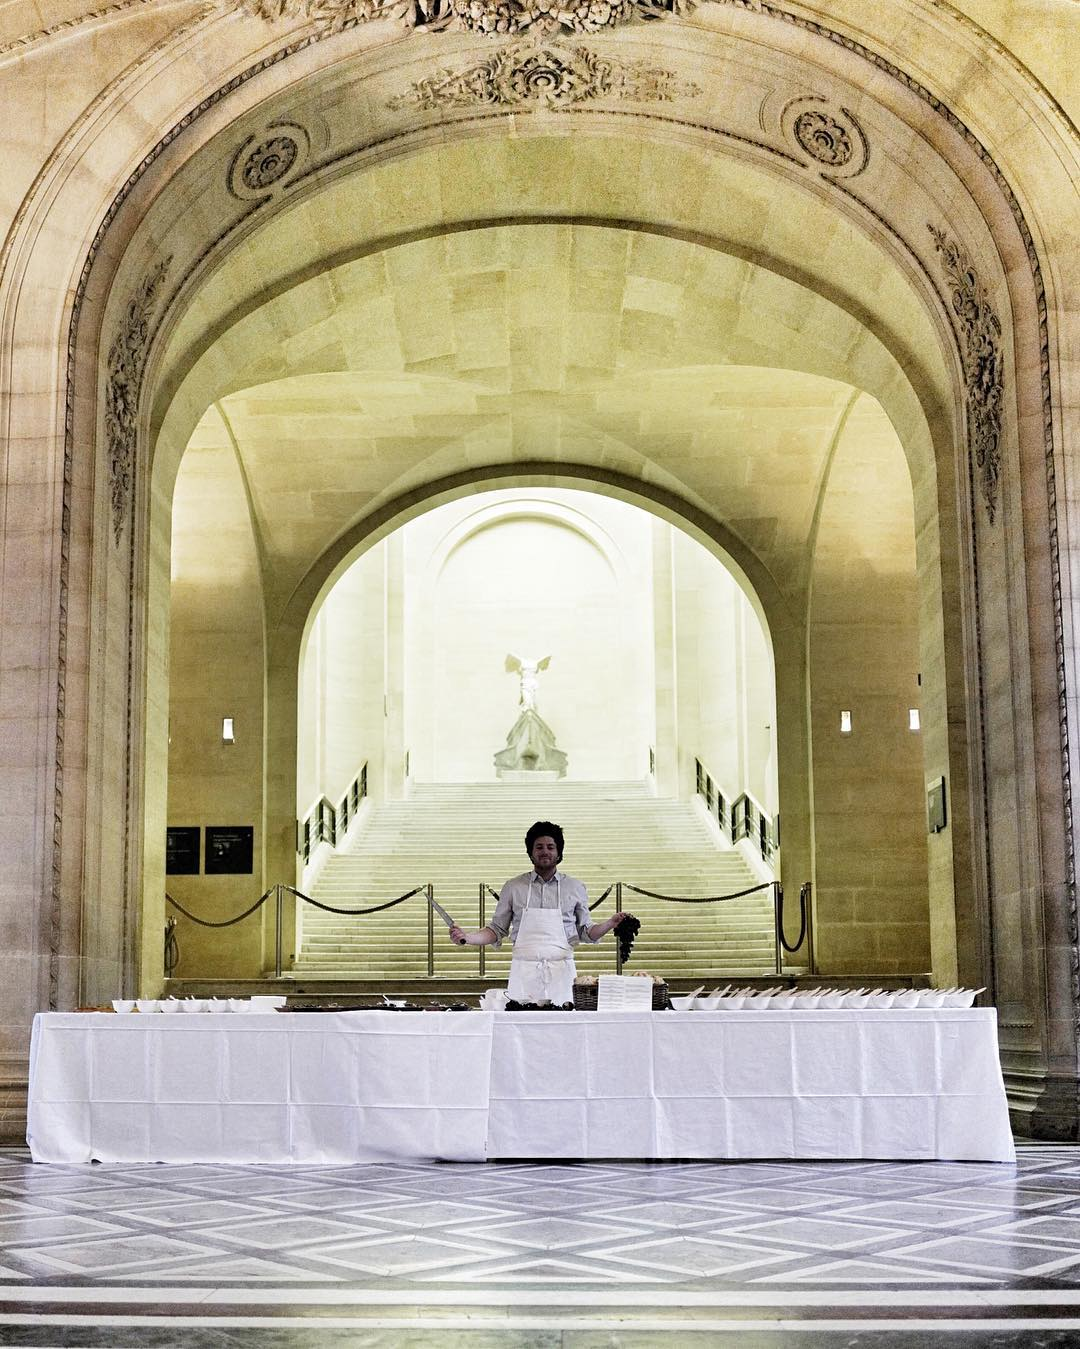 Chef Jean Imbert prepares breakfast at the Louvre